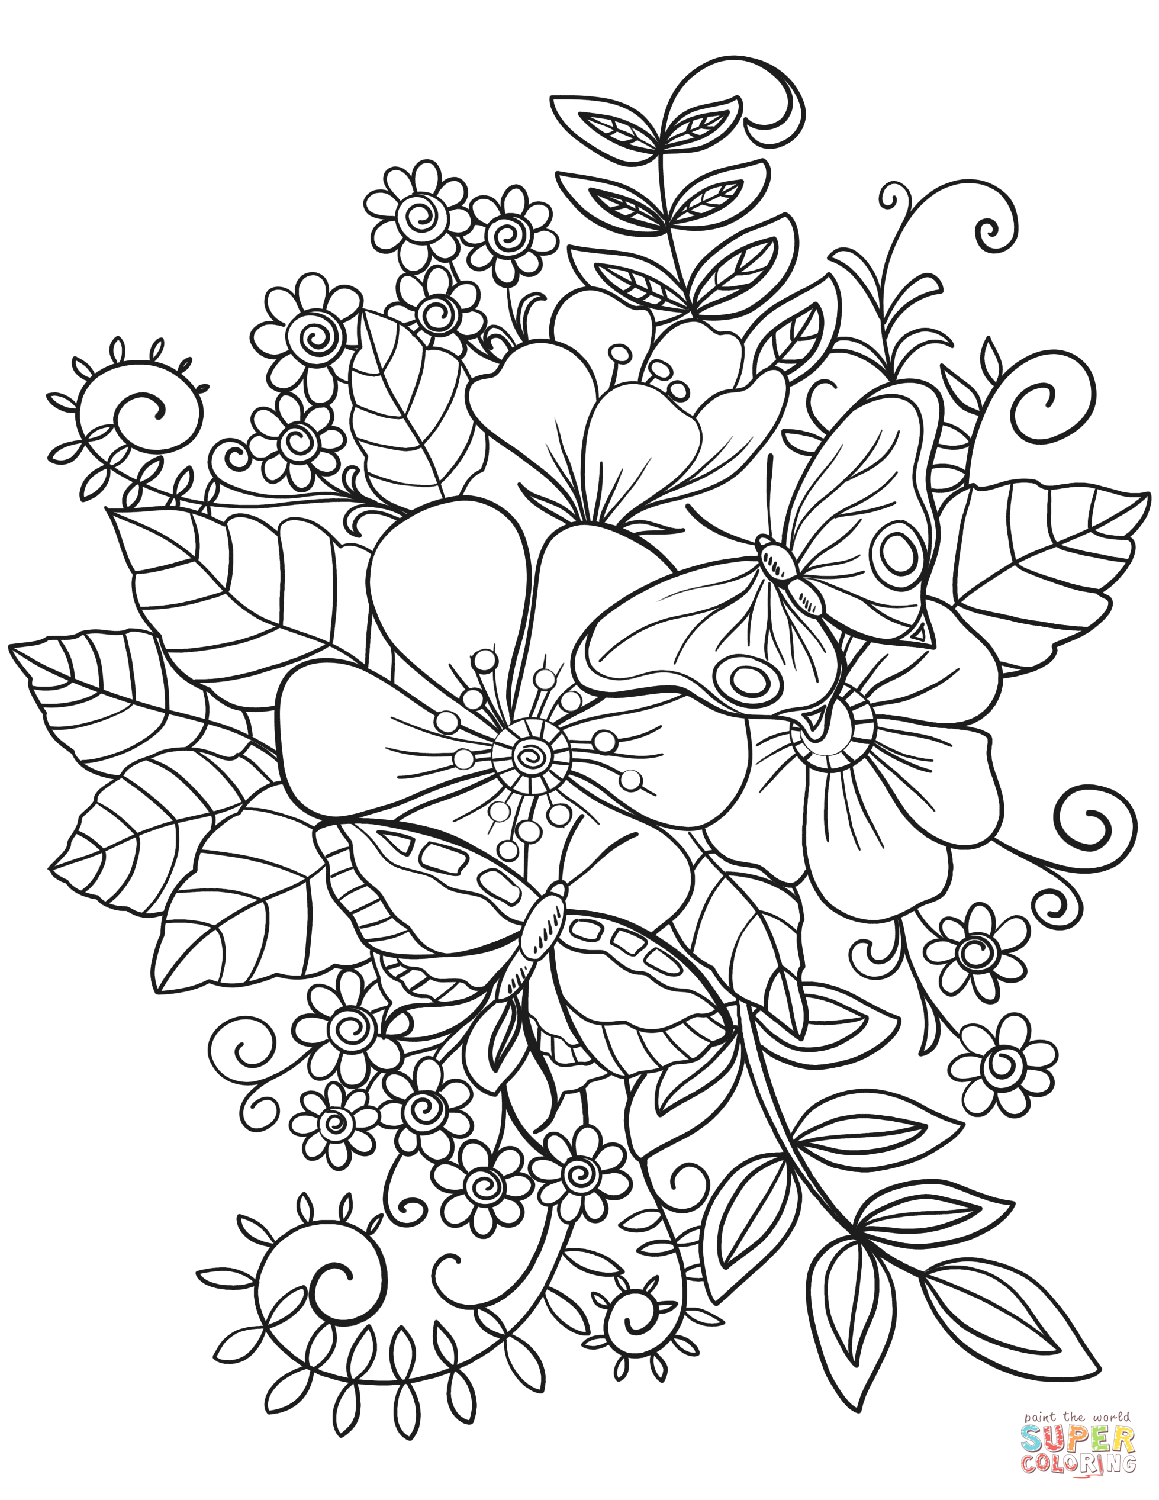 Free Printable Coloring Pages Of Flowers and butterflies butterflies On Flowers Coloring Page